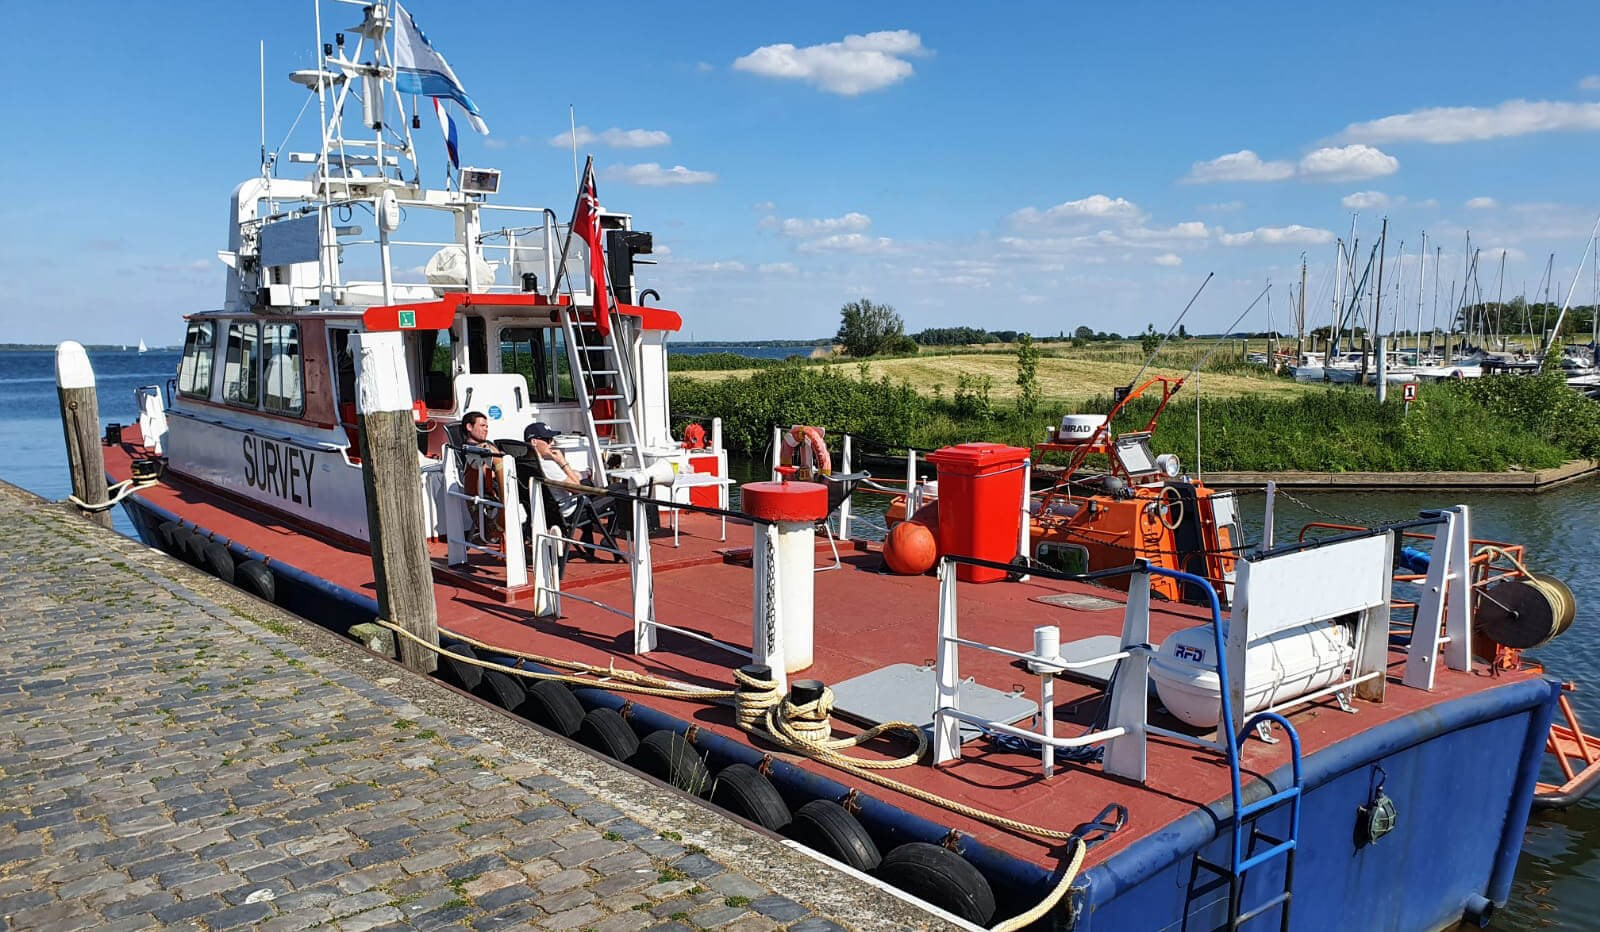 used survey boat in the netherlands for sale 07627 (7)